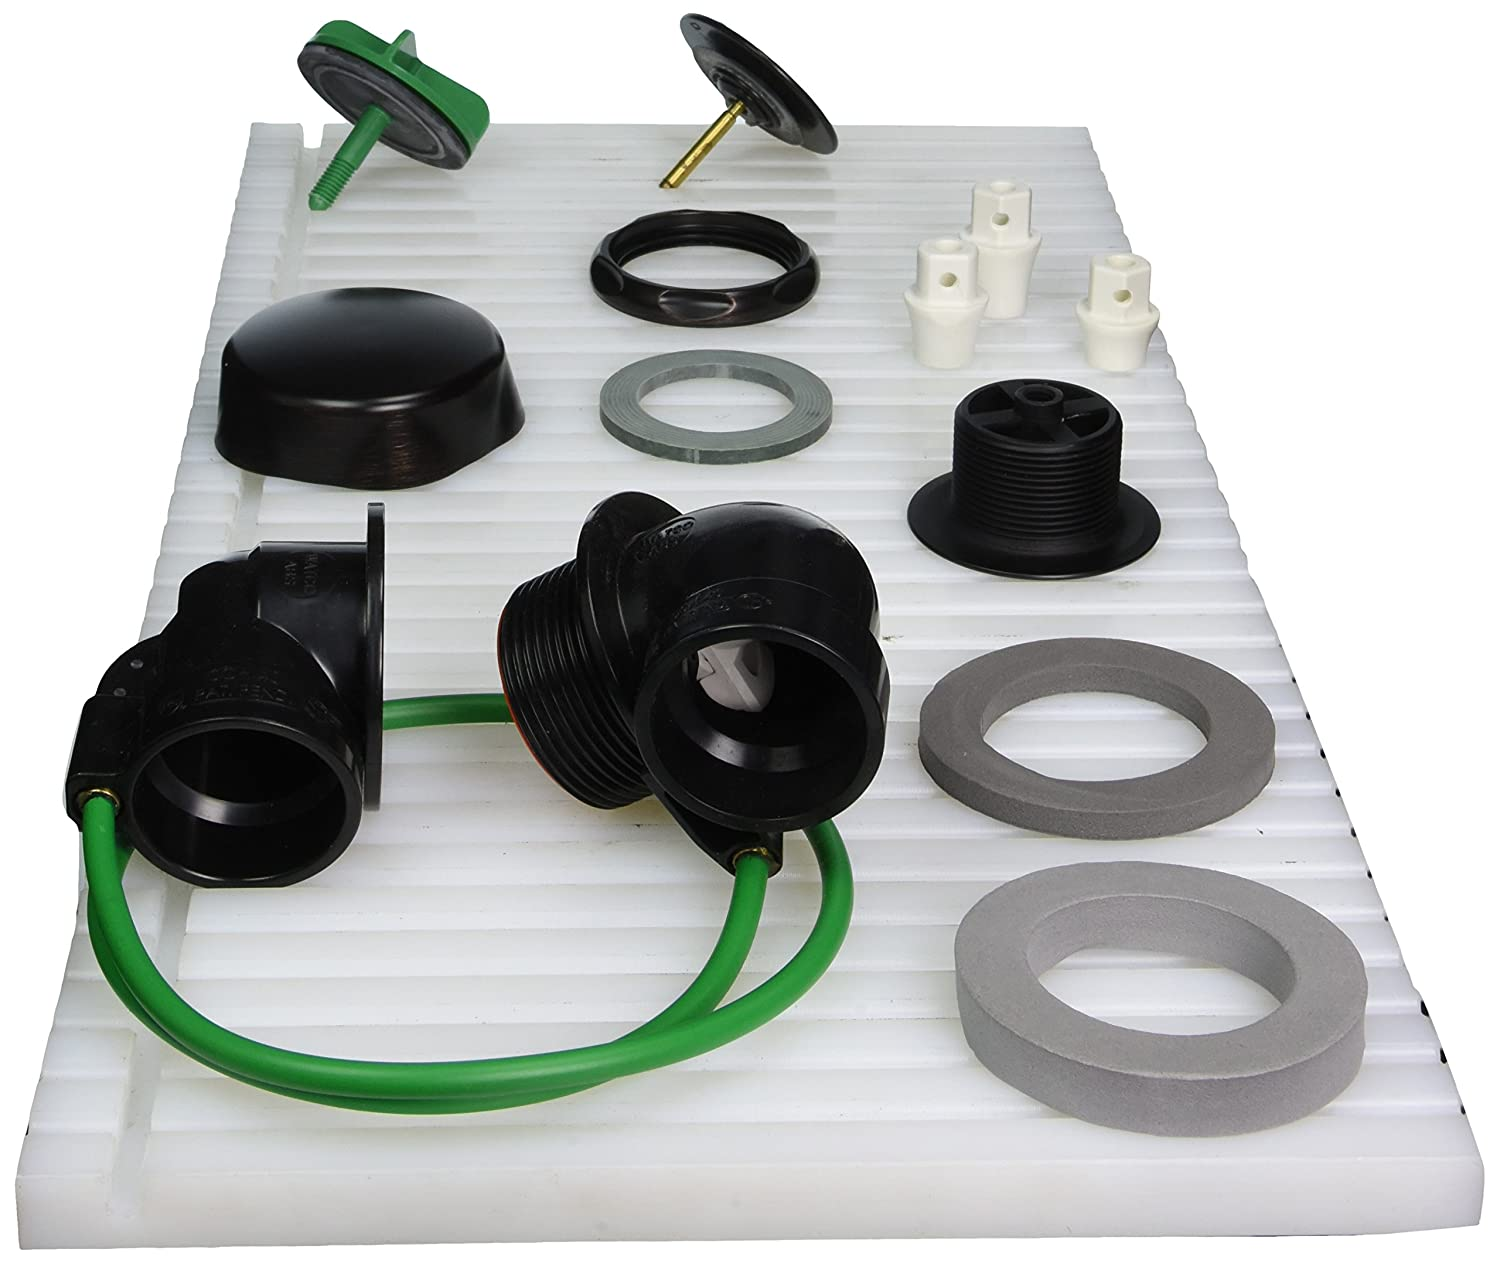 Chrome Plated Watco Manufacturing 981-CA-ABS-CP 1.5-Inch Schedule 40 ABS Piping Innovator Cable Bath Waste Half Kit